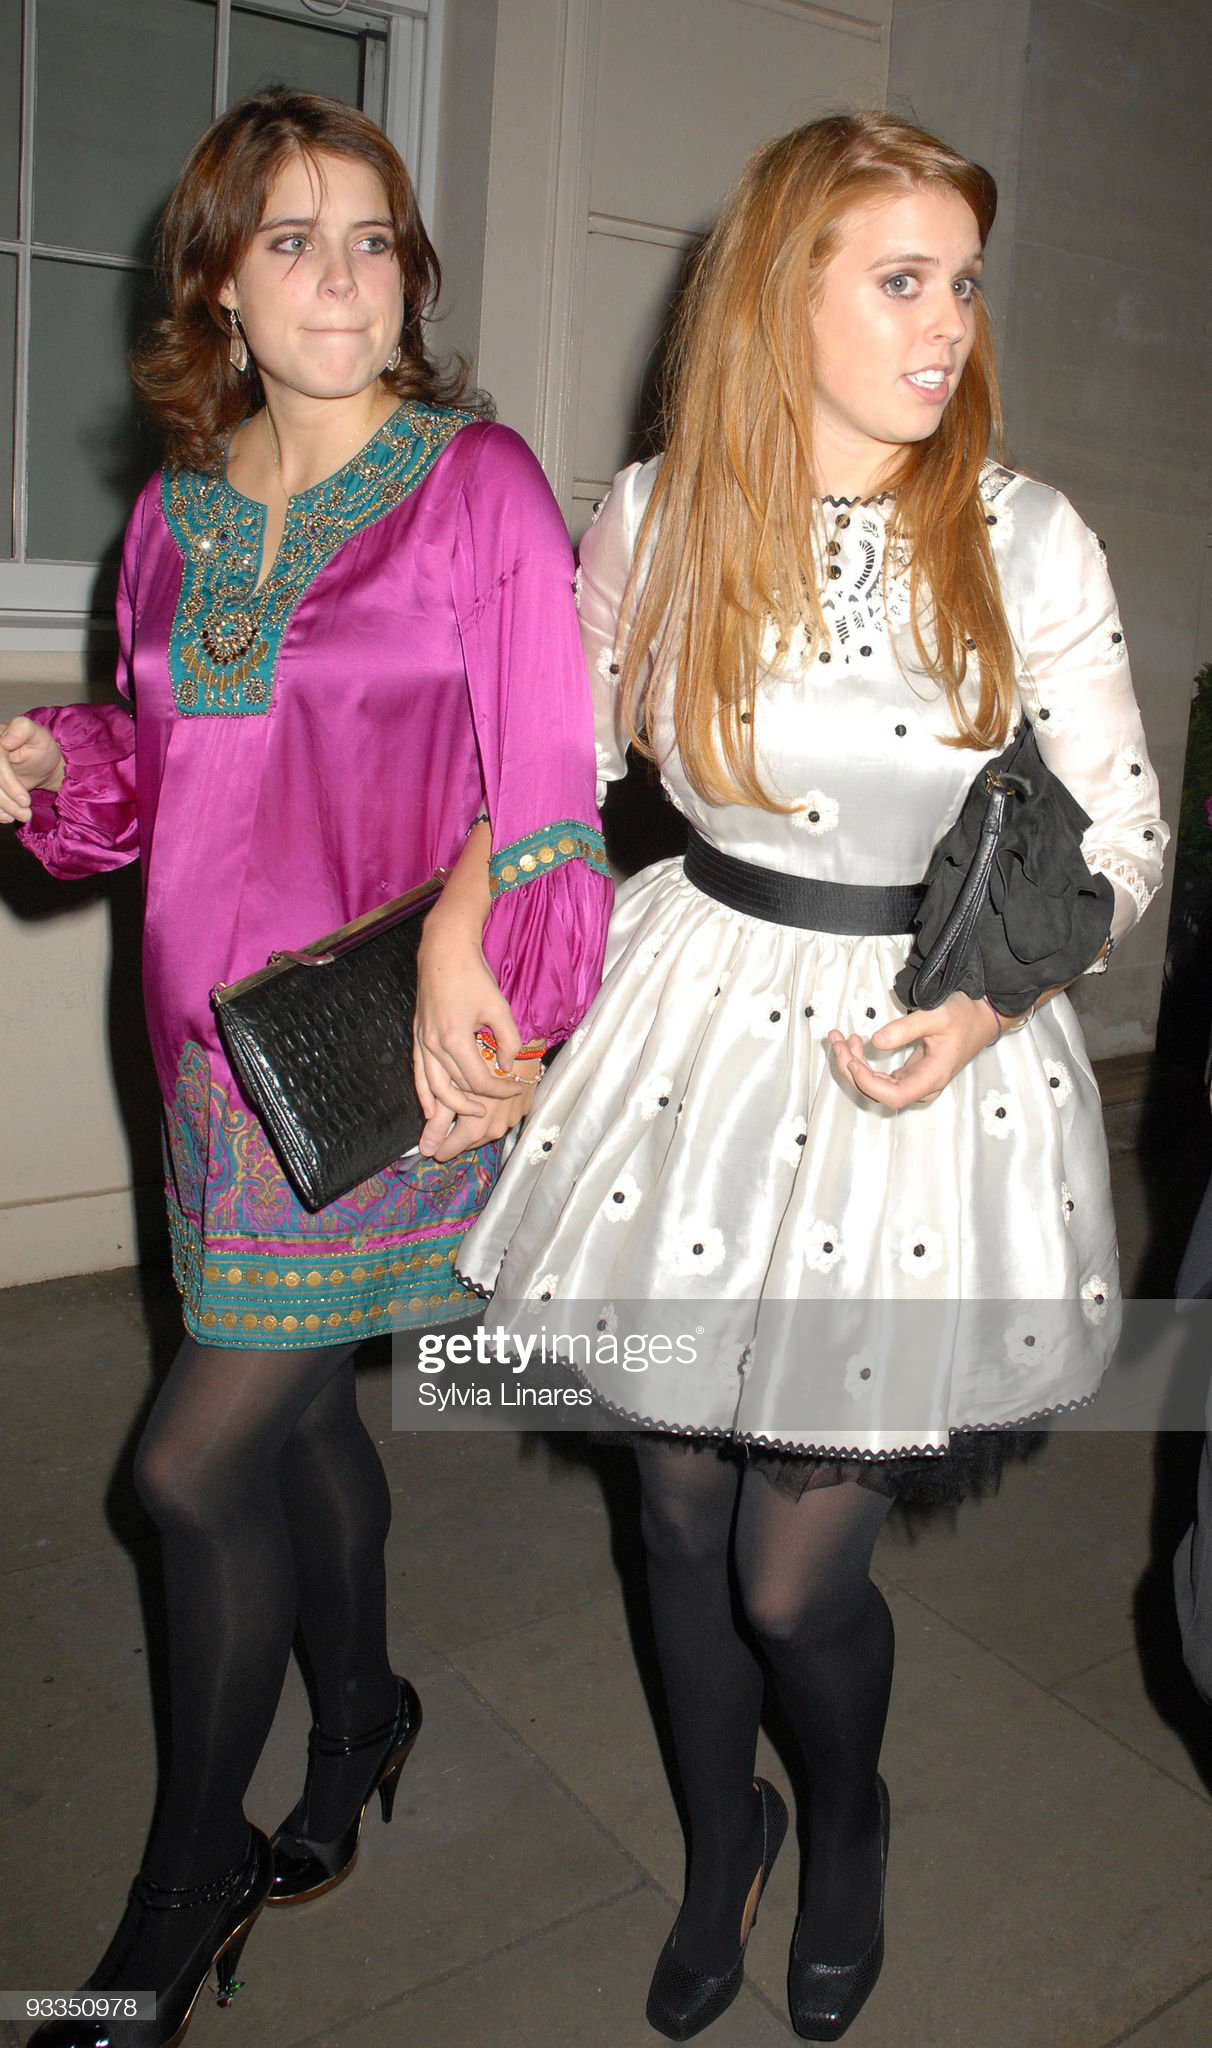 Celebrity Sightings In London - October 15, 2009 : News Photo